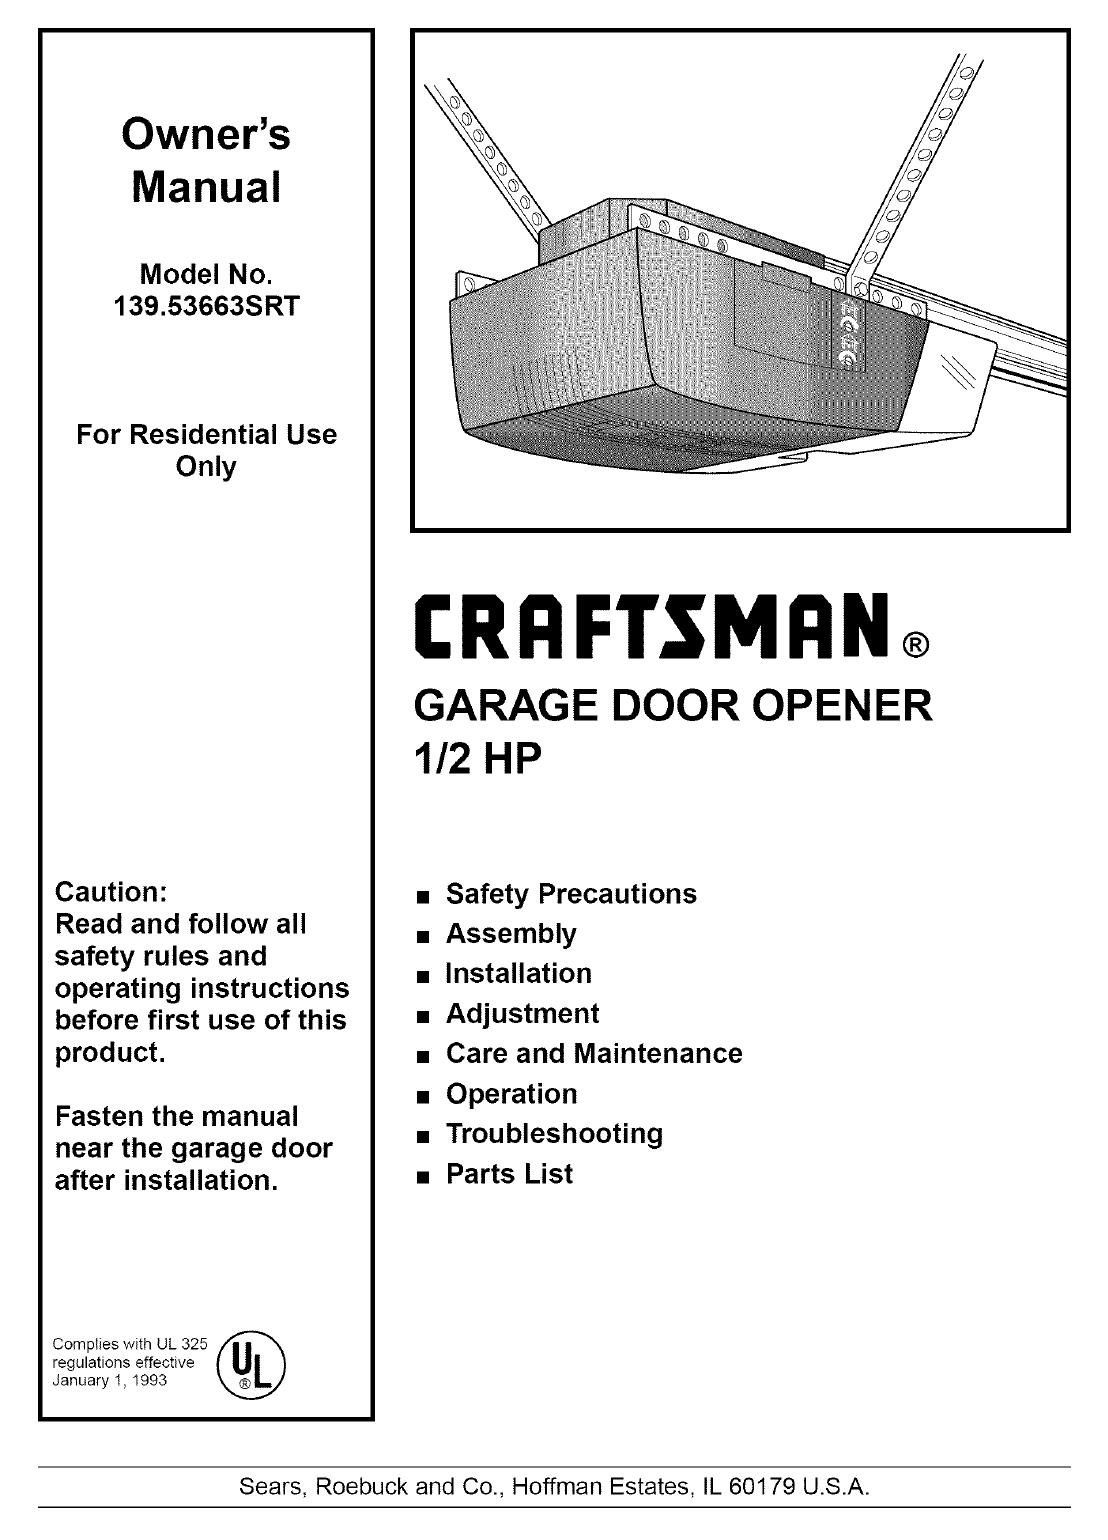 Craftsman 13953663srt User Manual 1 2 Hp Garage Door Opner Manuals And Guides L0712216